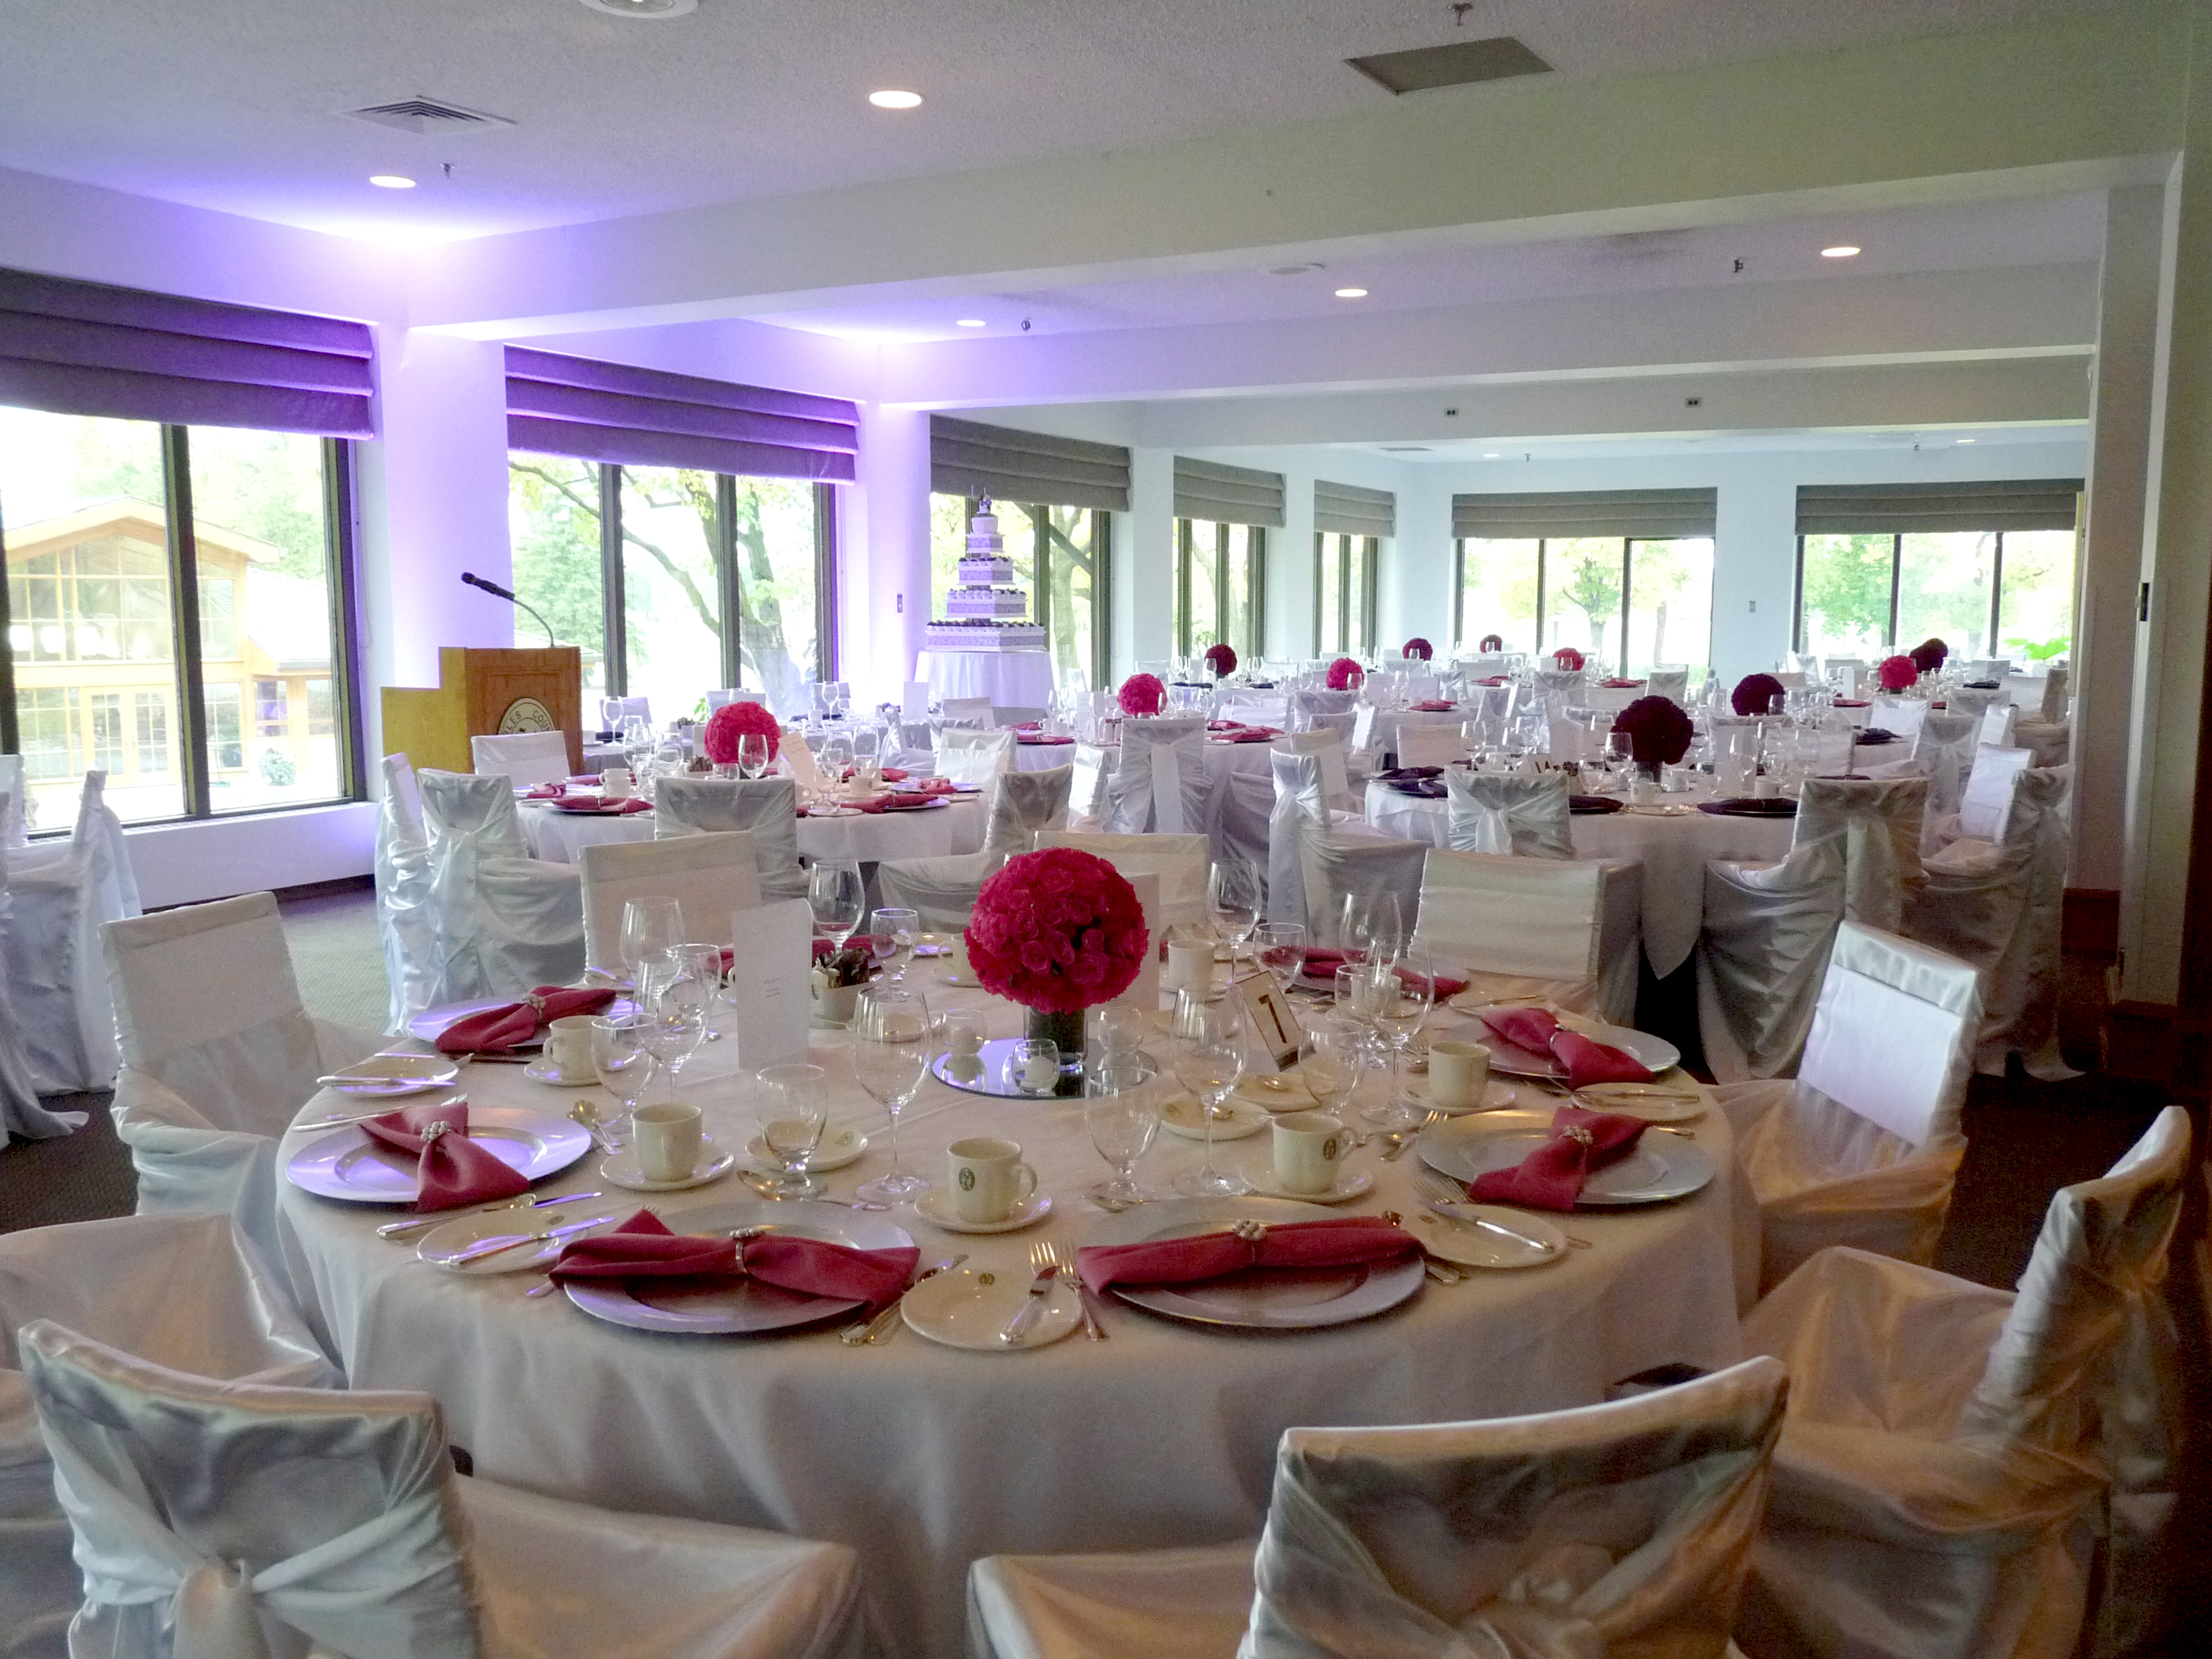 St Charles Country Club, head table